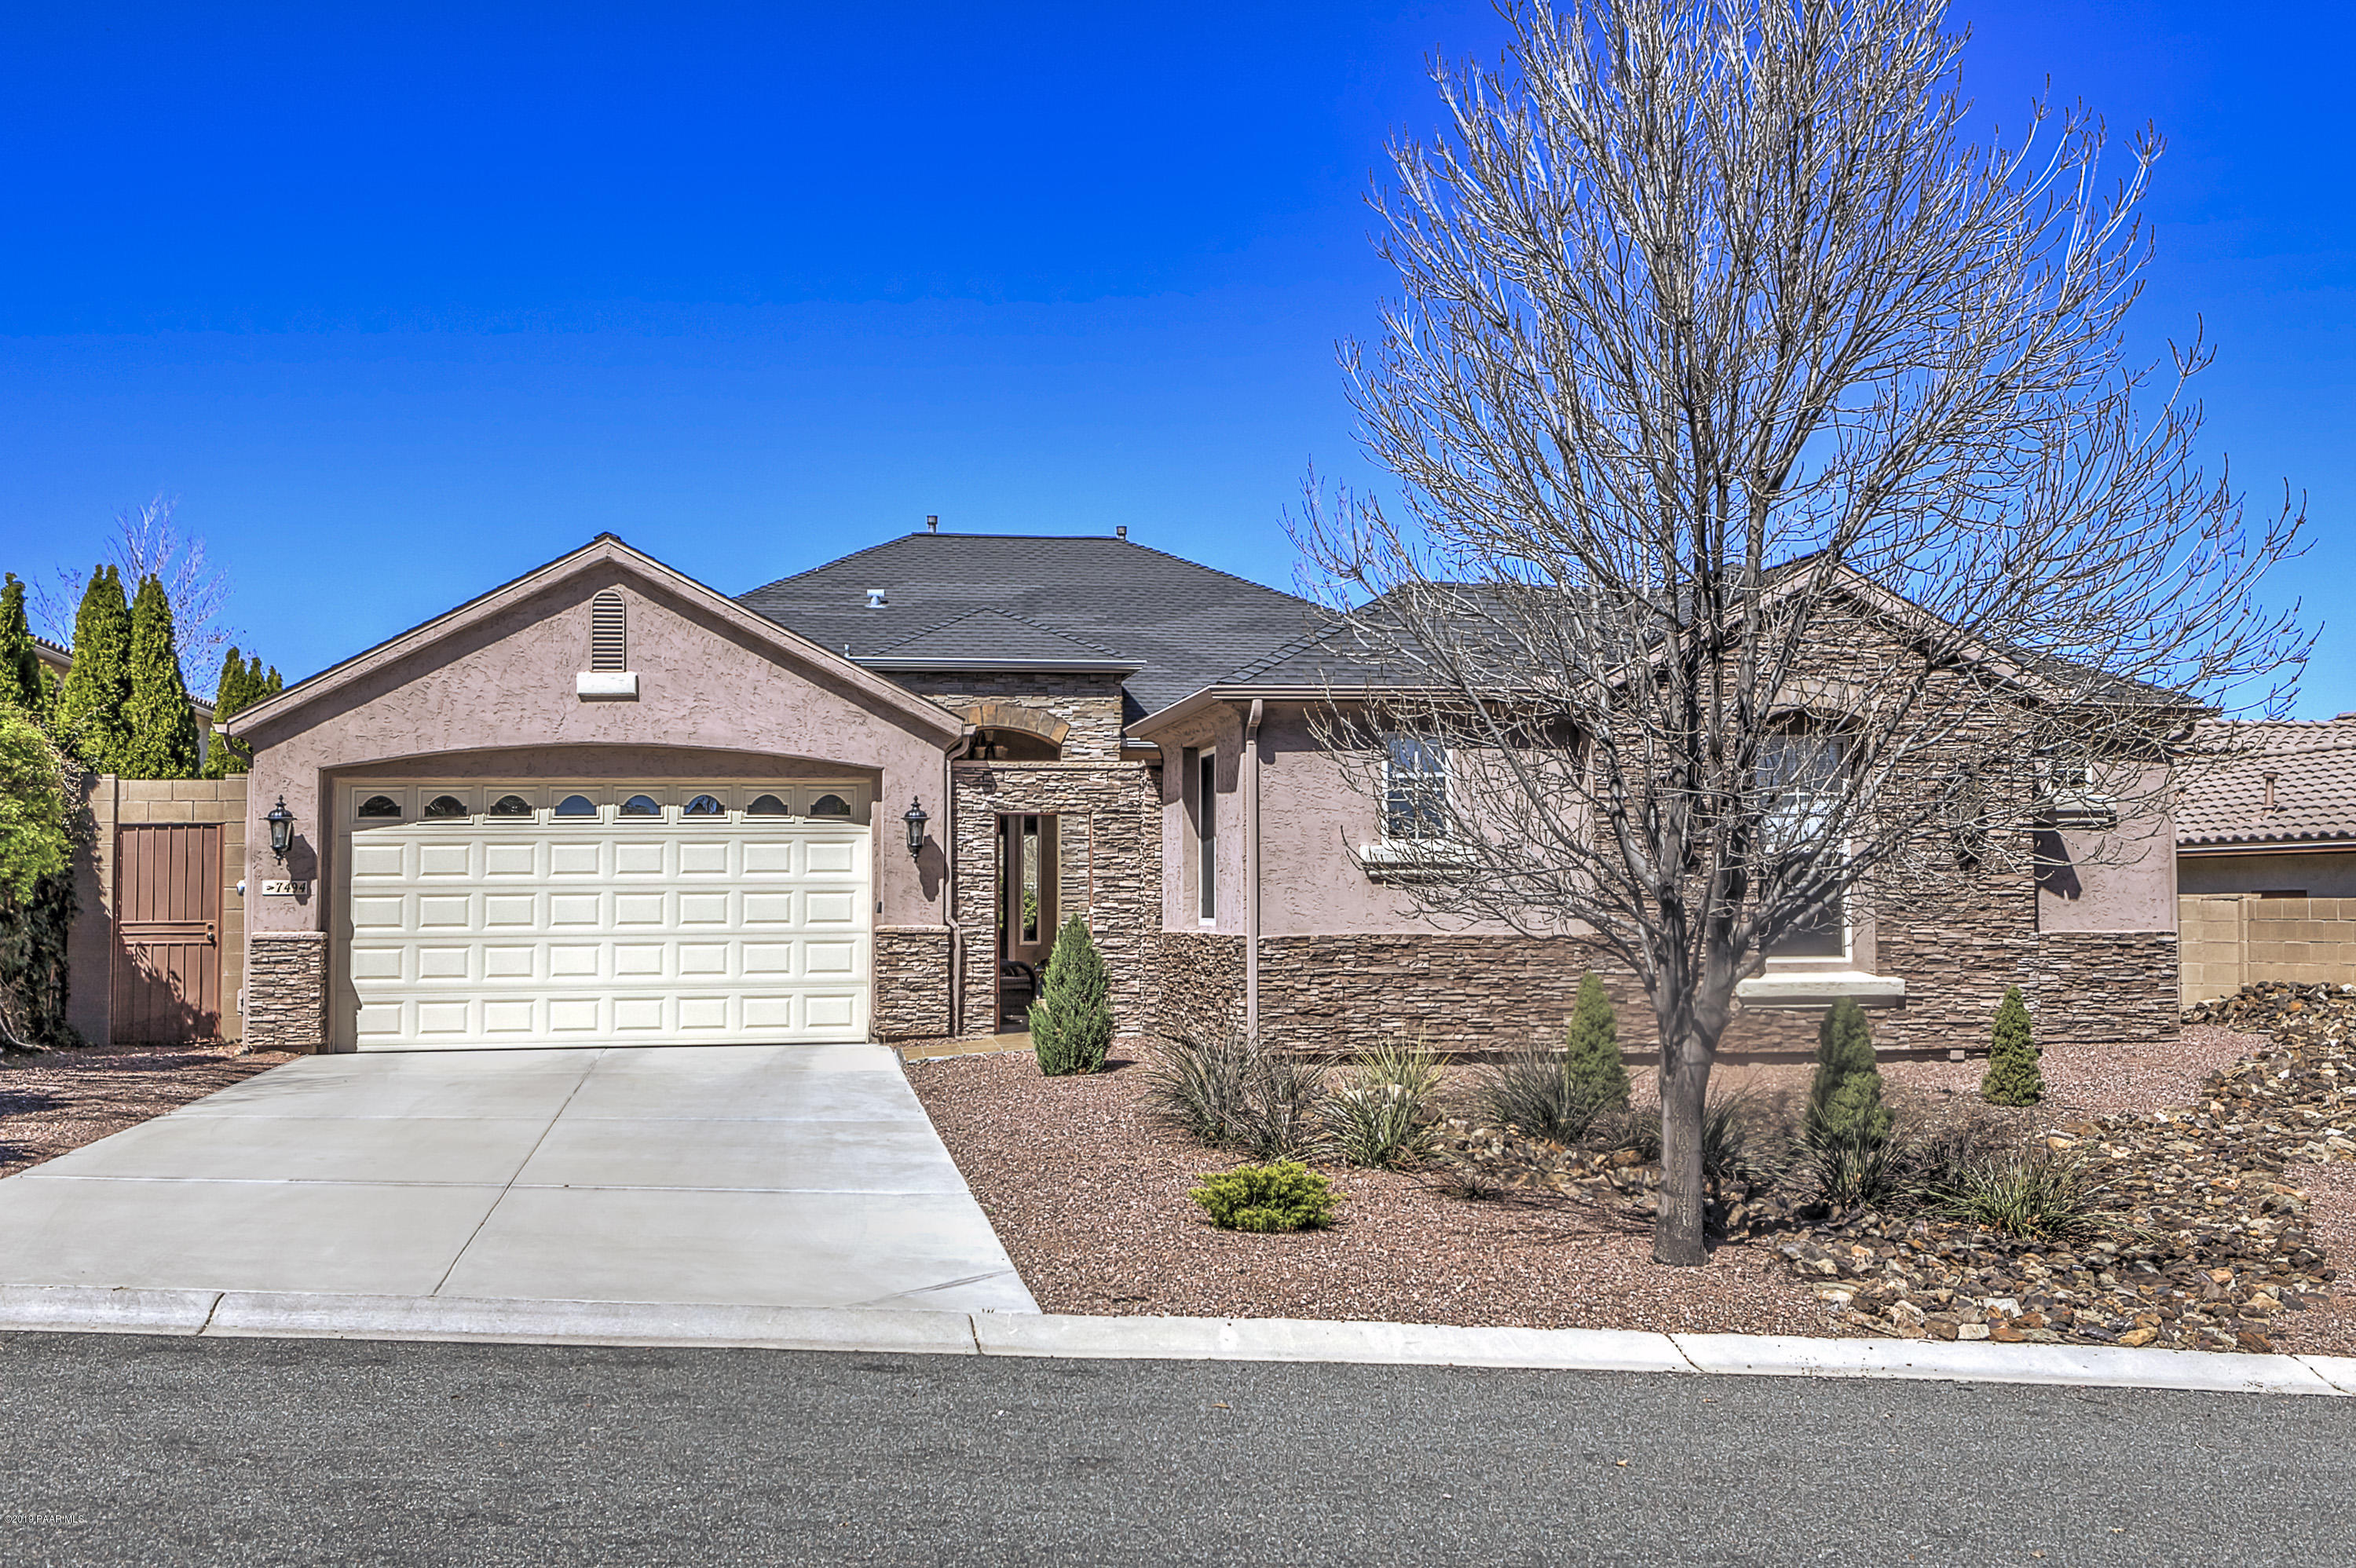 Photo of 7494 Traders, Prescott Valley, AZ 86314